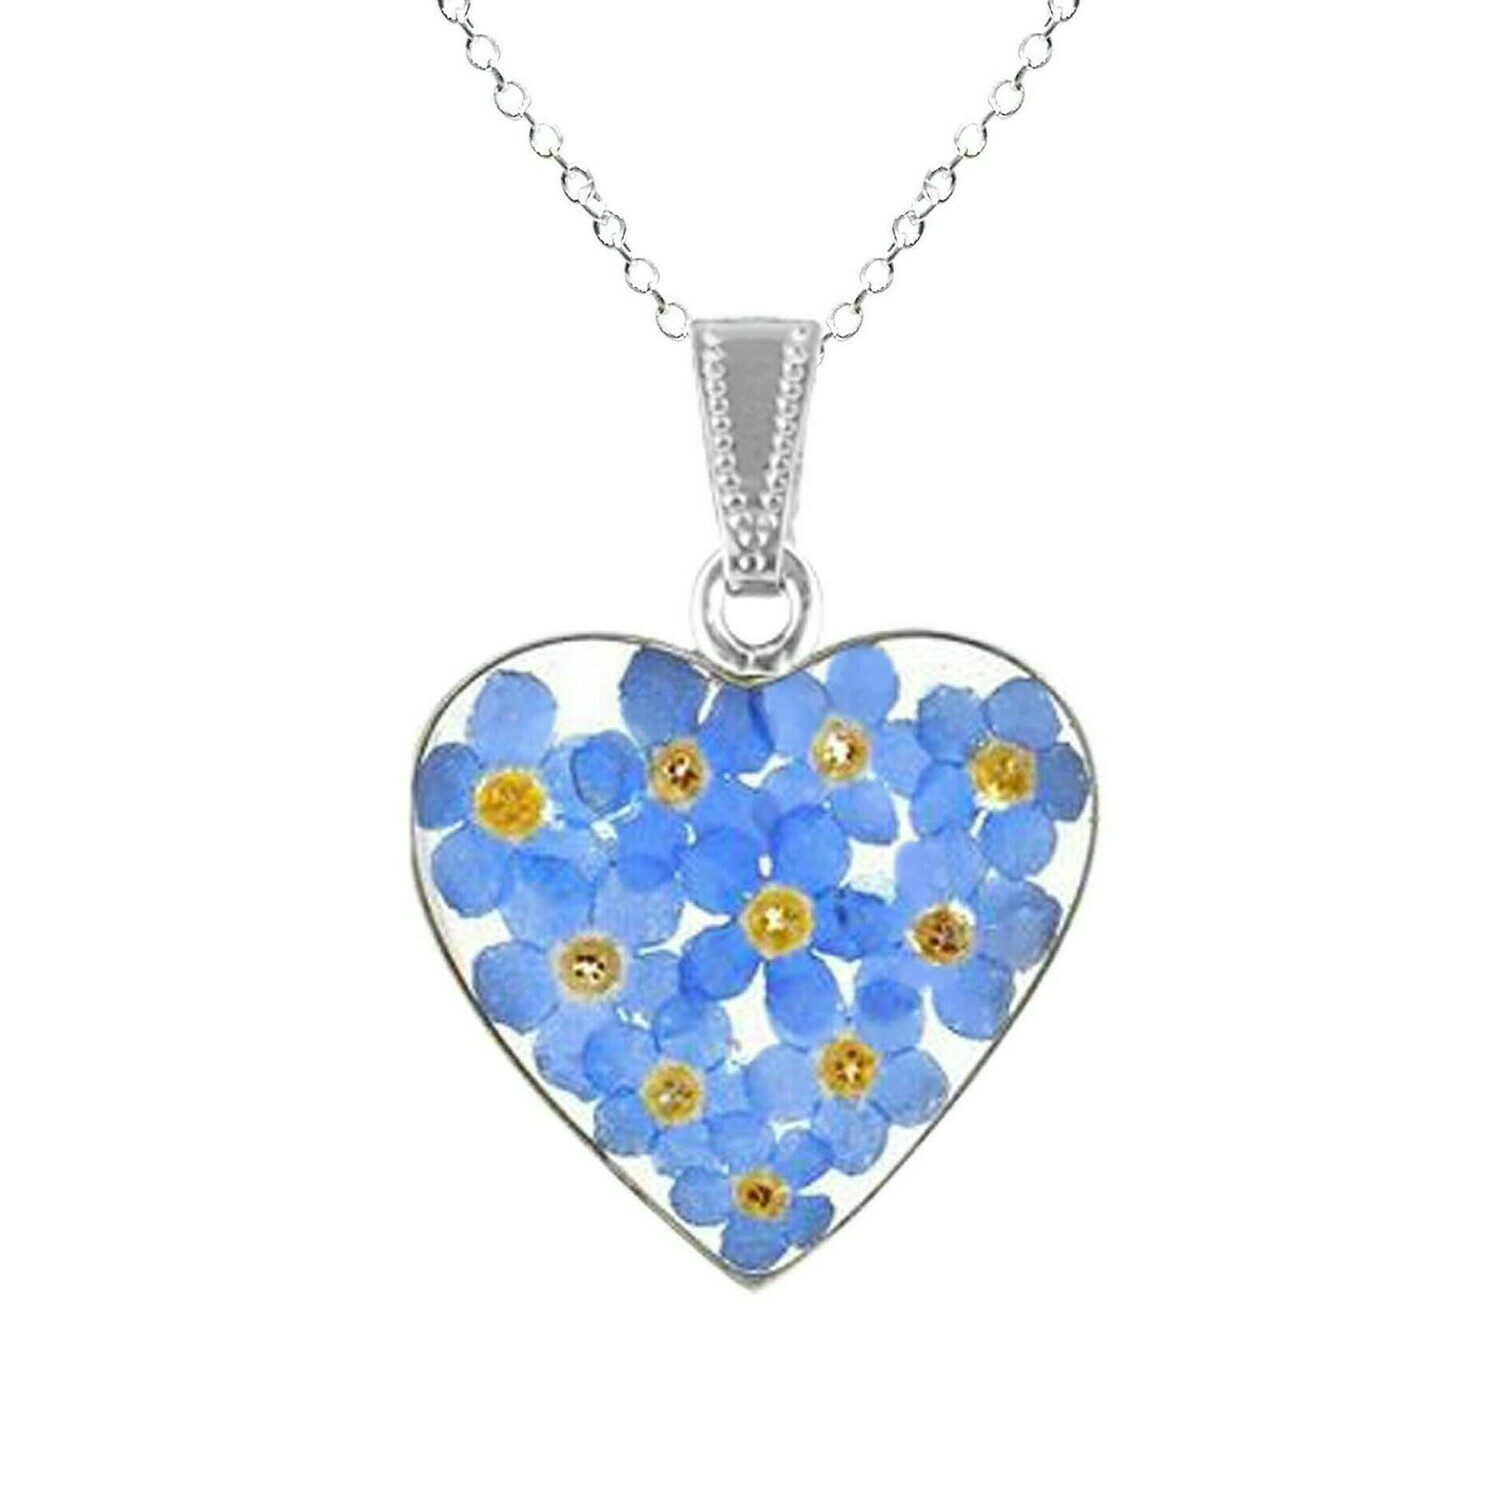 Forget-Me-Not Necklace, Large Heart, Transparent